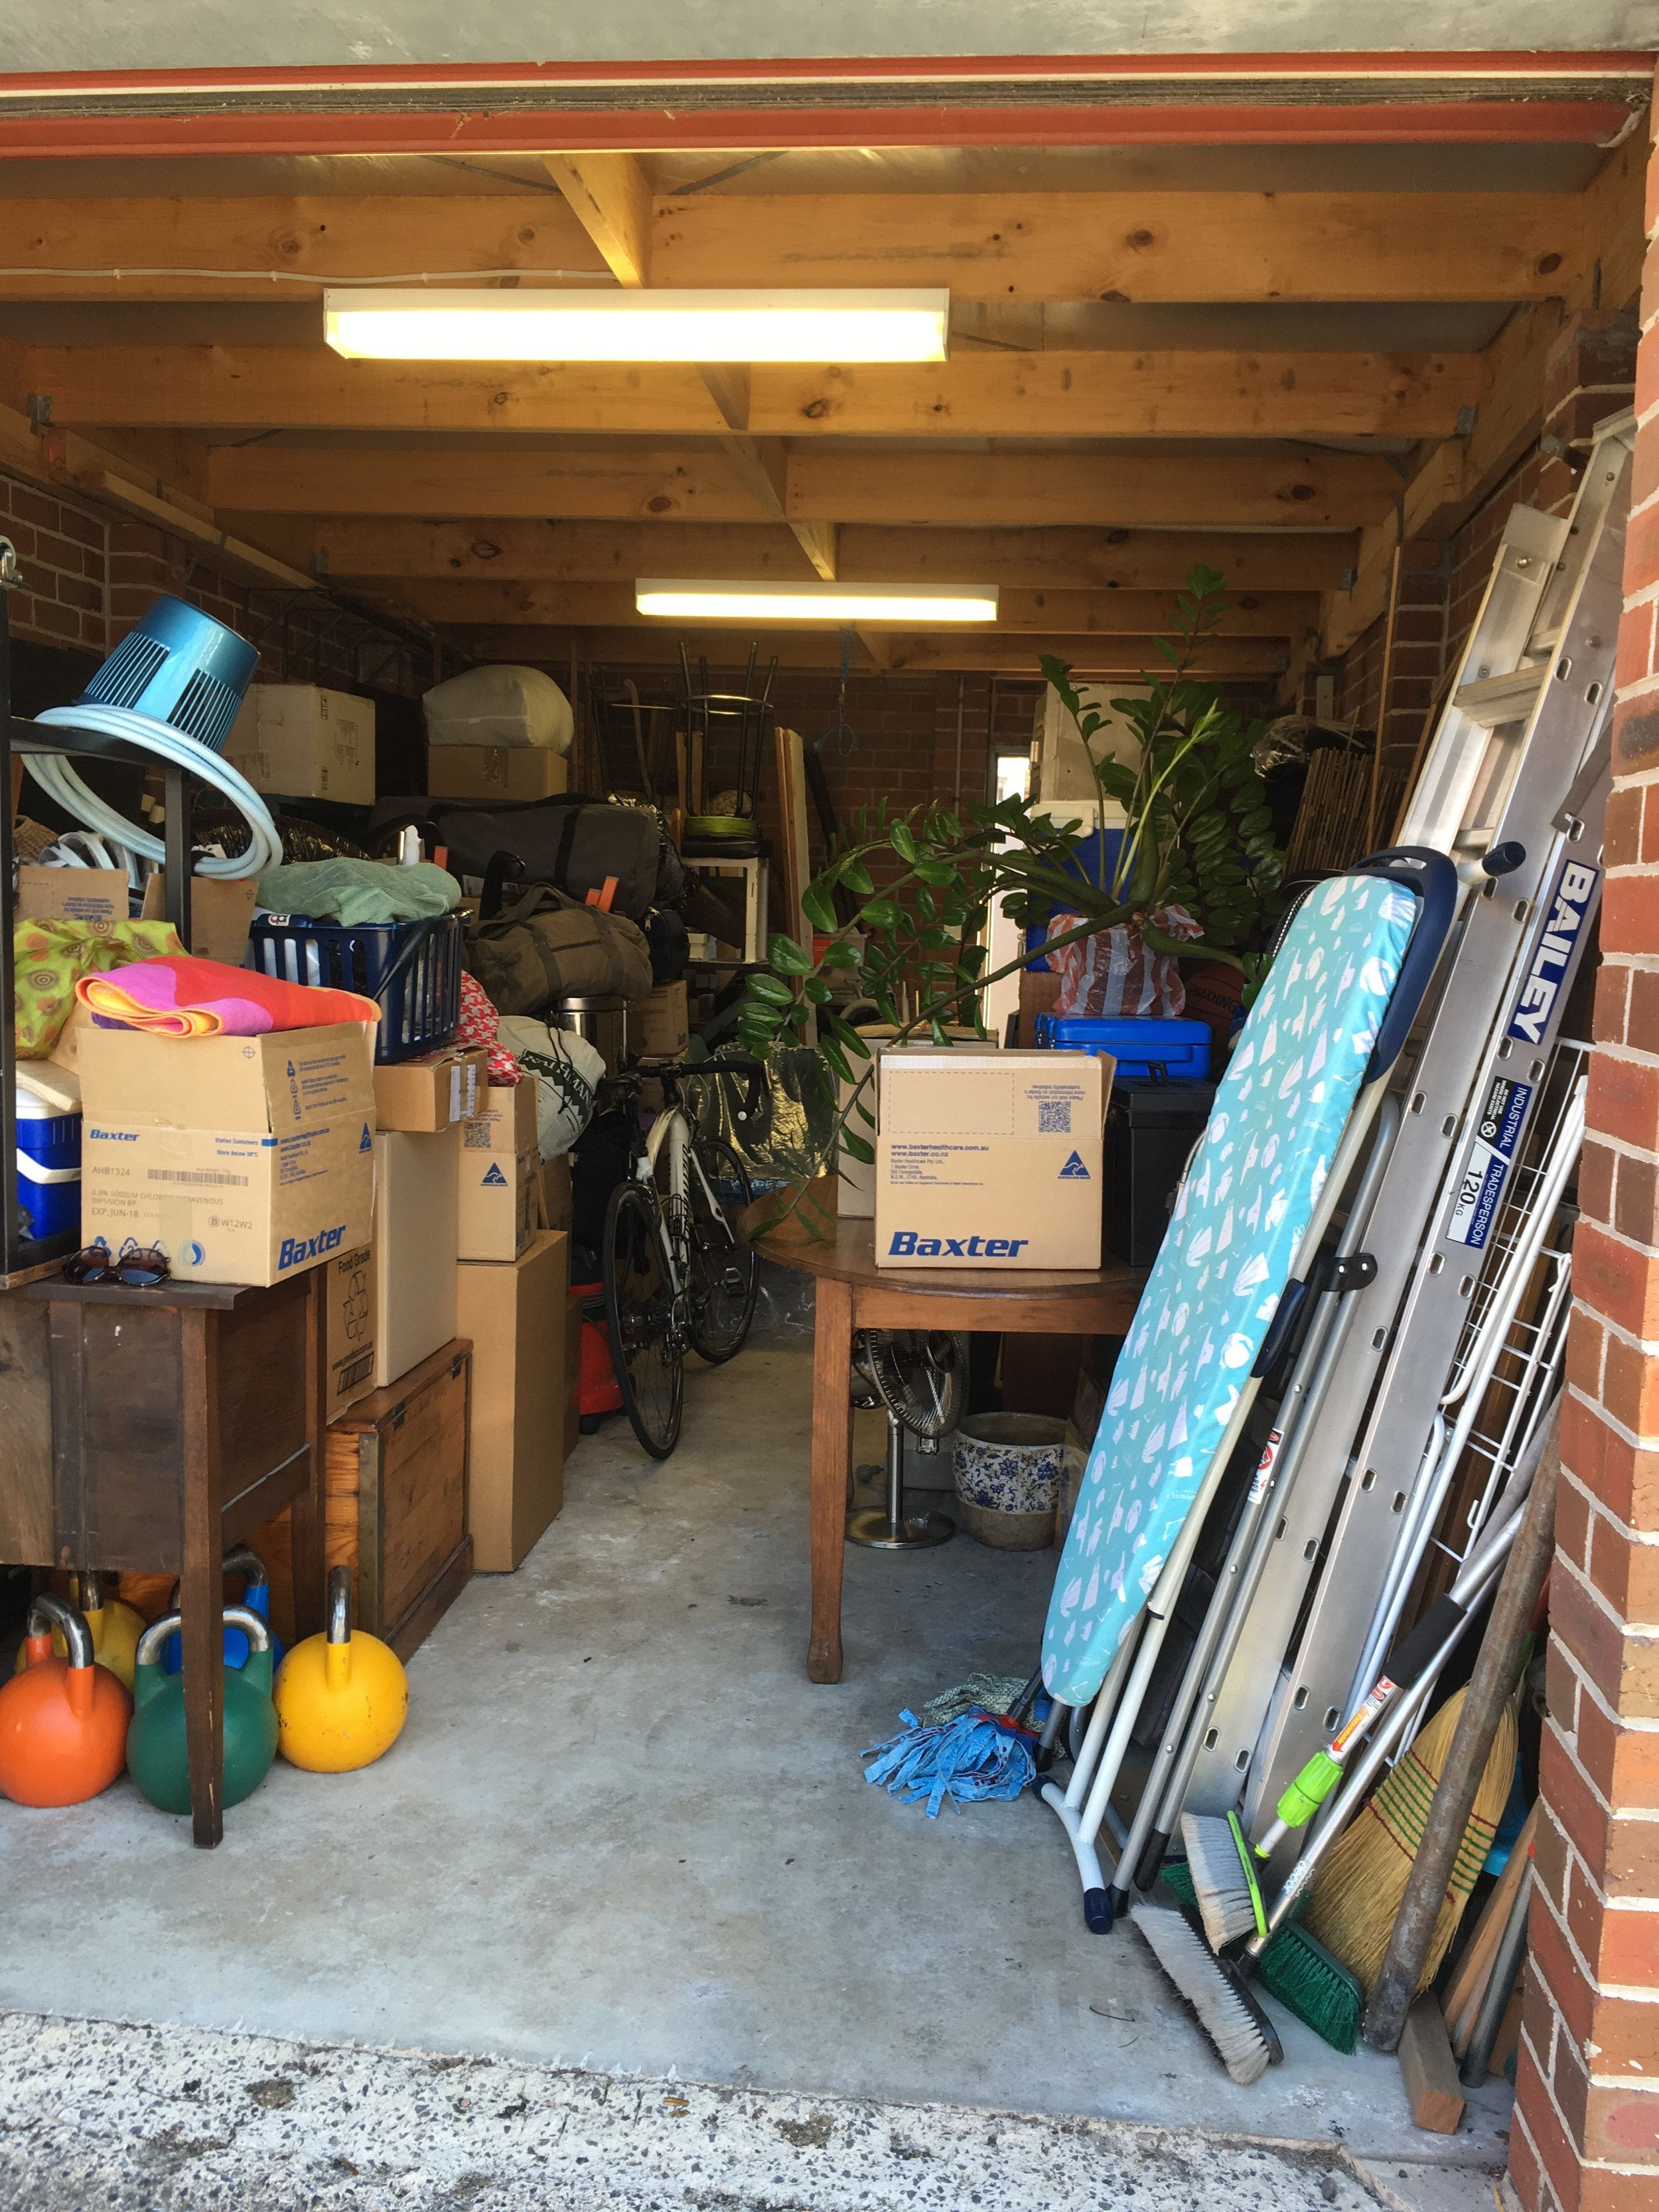 All of our worldly possessions crammed into the garage - another unpleasant side effect of renovations not running on schedule!